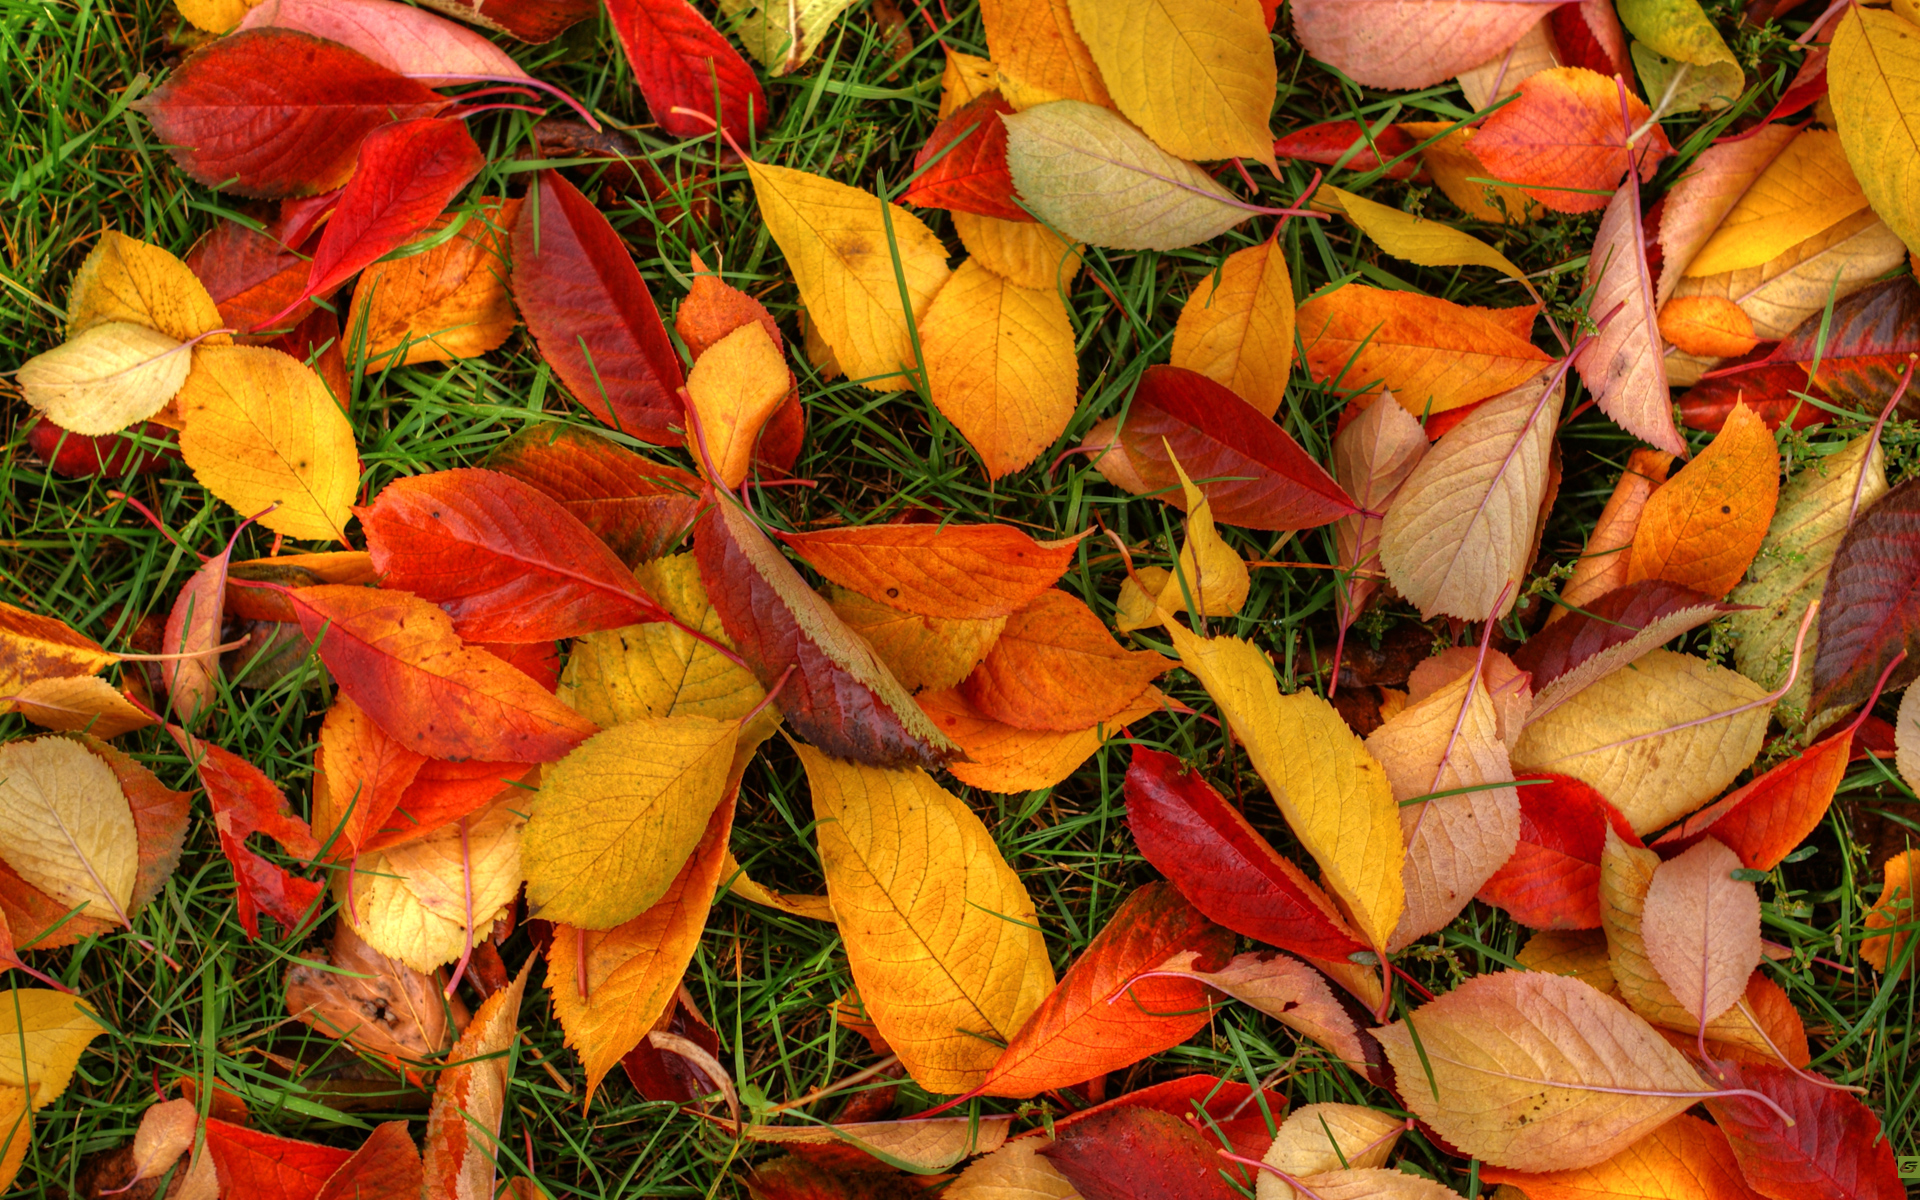 Autumn Leaves Wallpaper Hd Autumn leaves 1920x1200